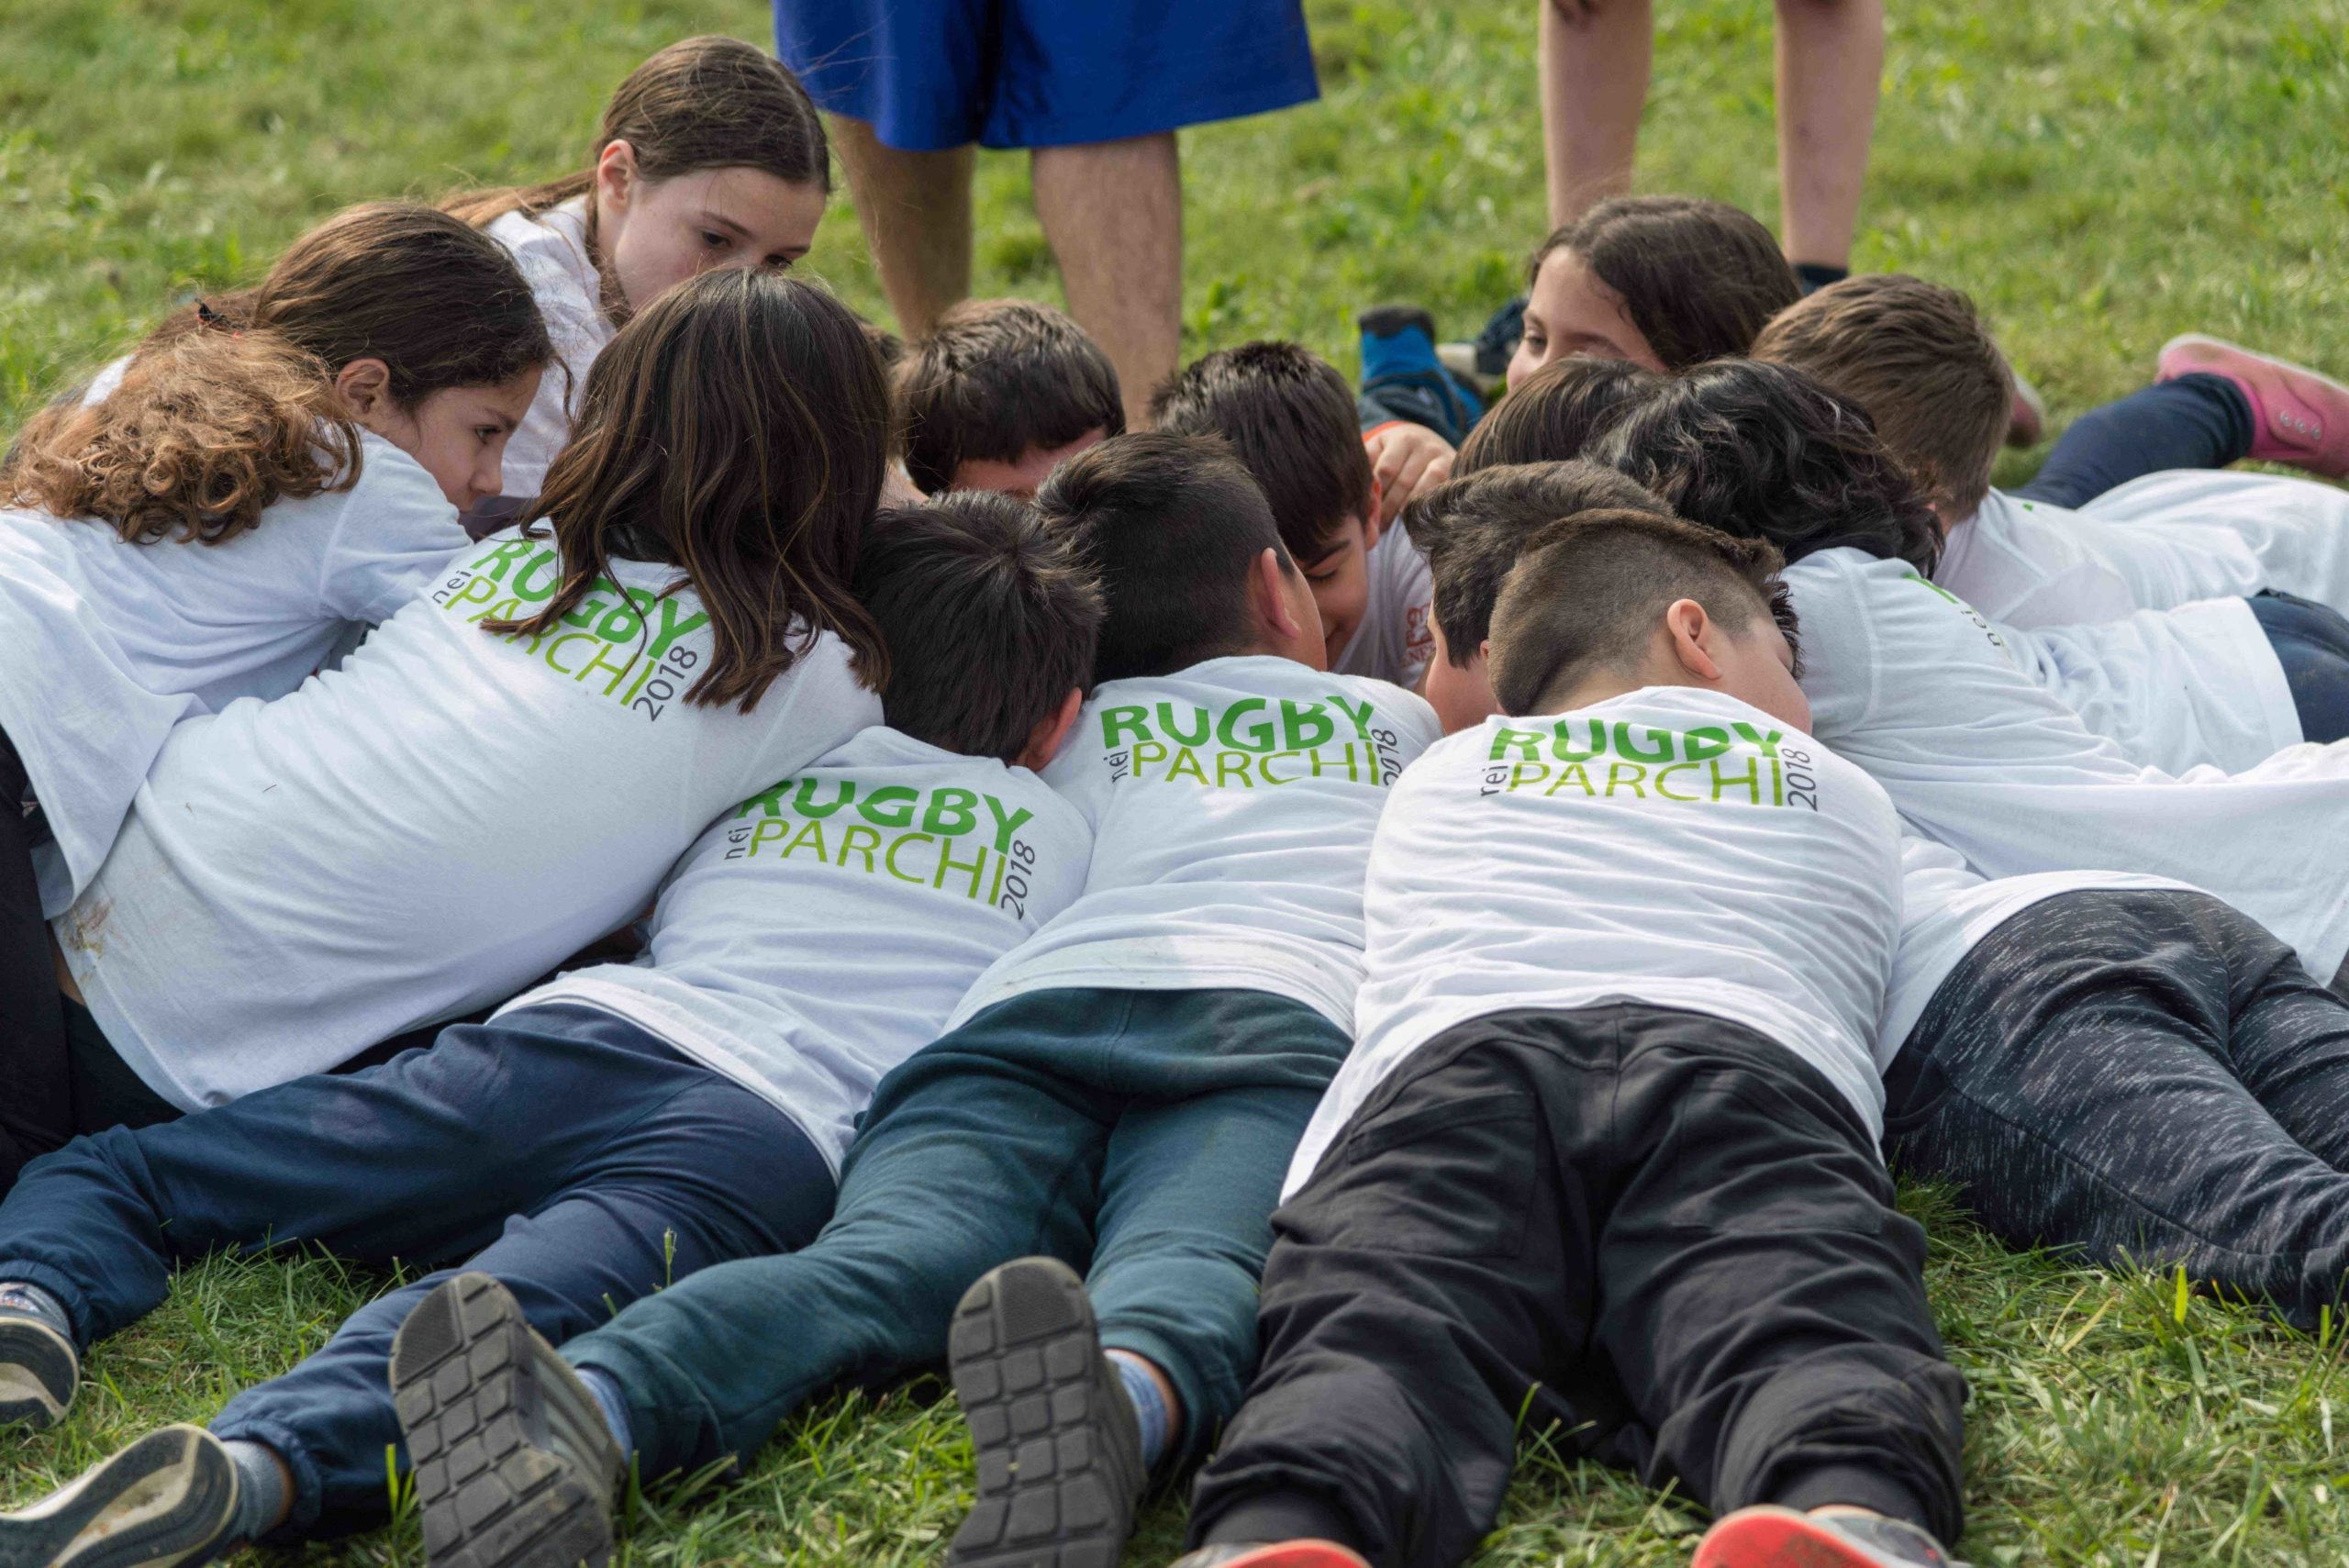 Rugby nei Parchi 2019, famiglie sportive e felici